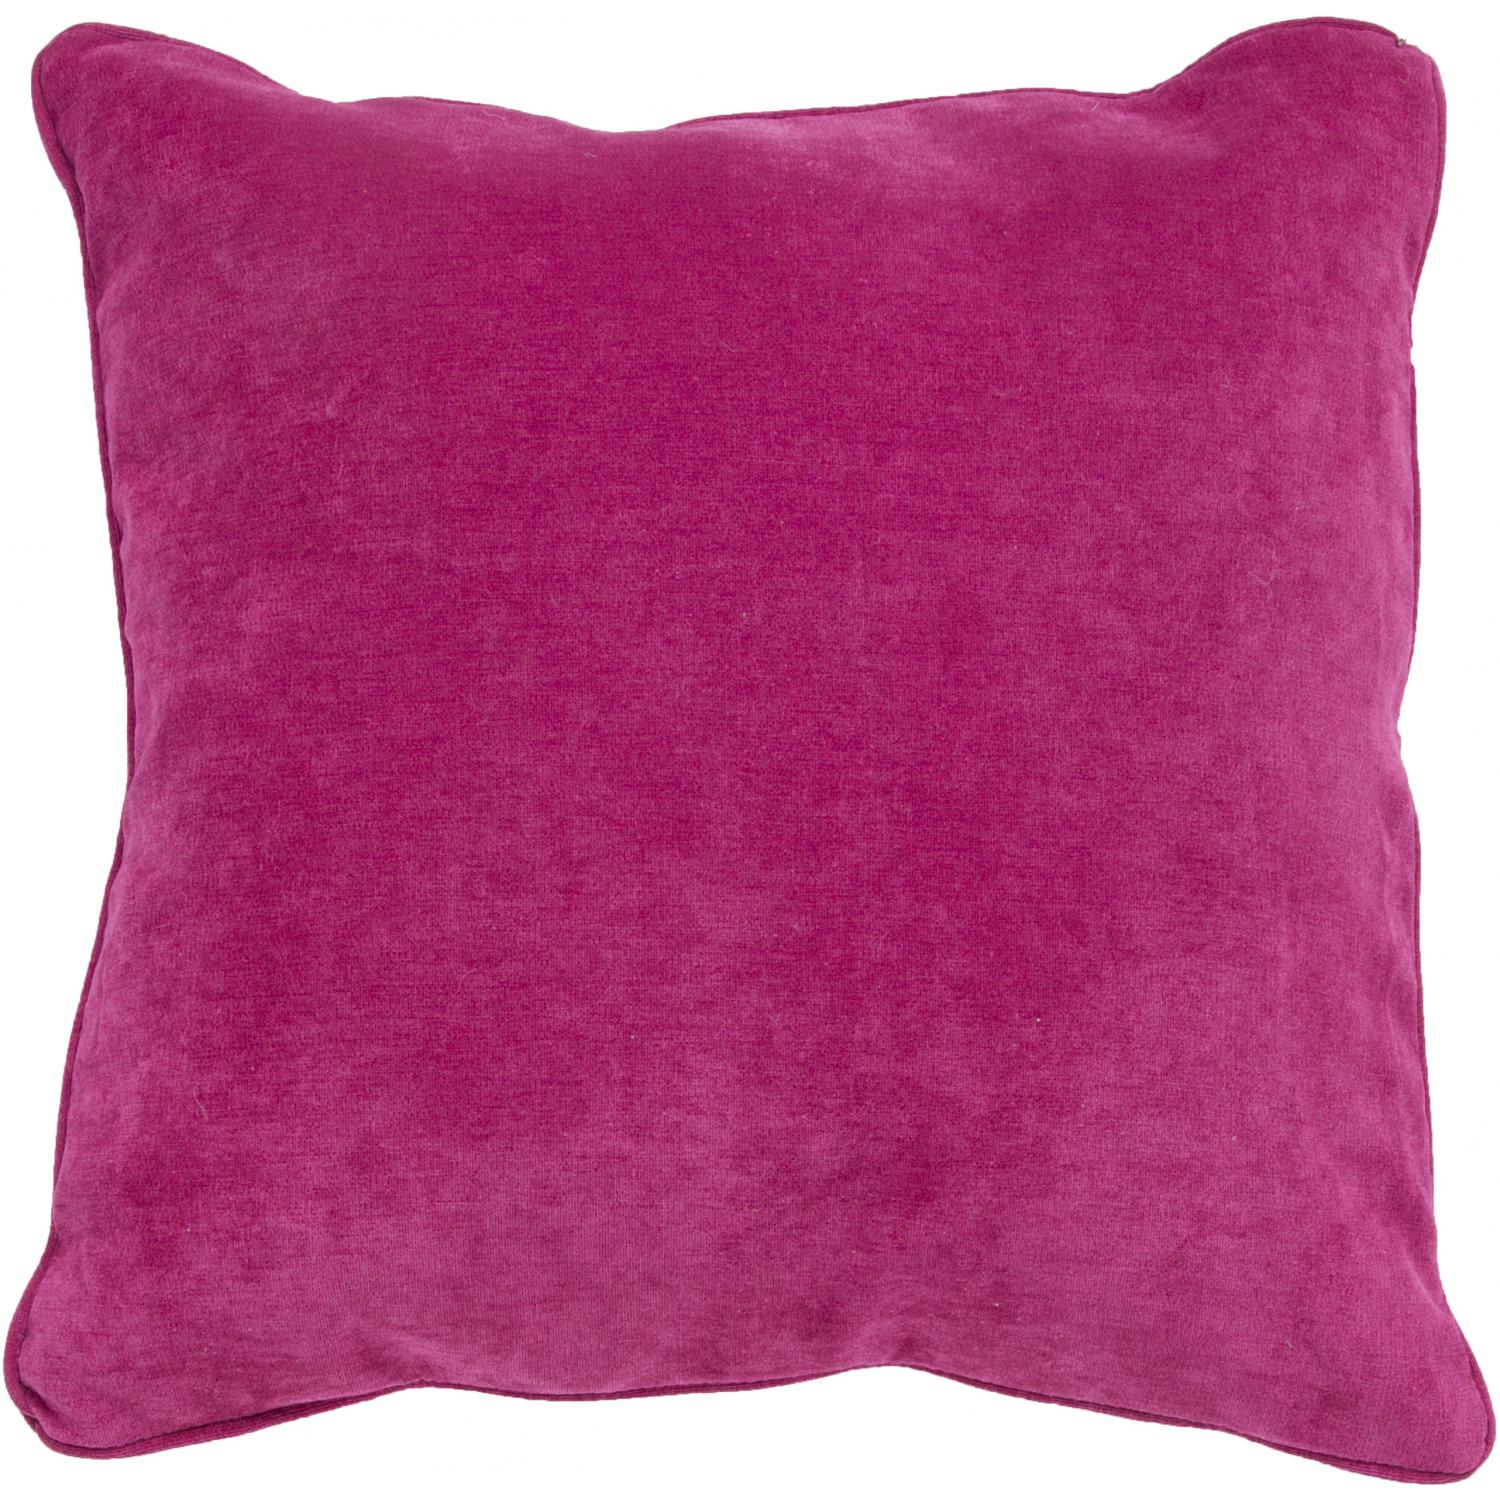 Picture of Jaipur Rugs Allure 20 X 20 Outdoor Pillow - Pink